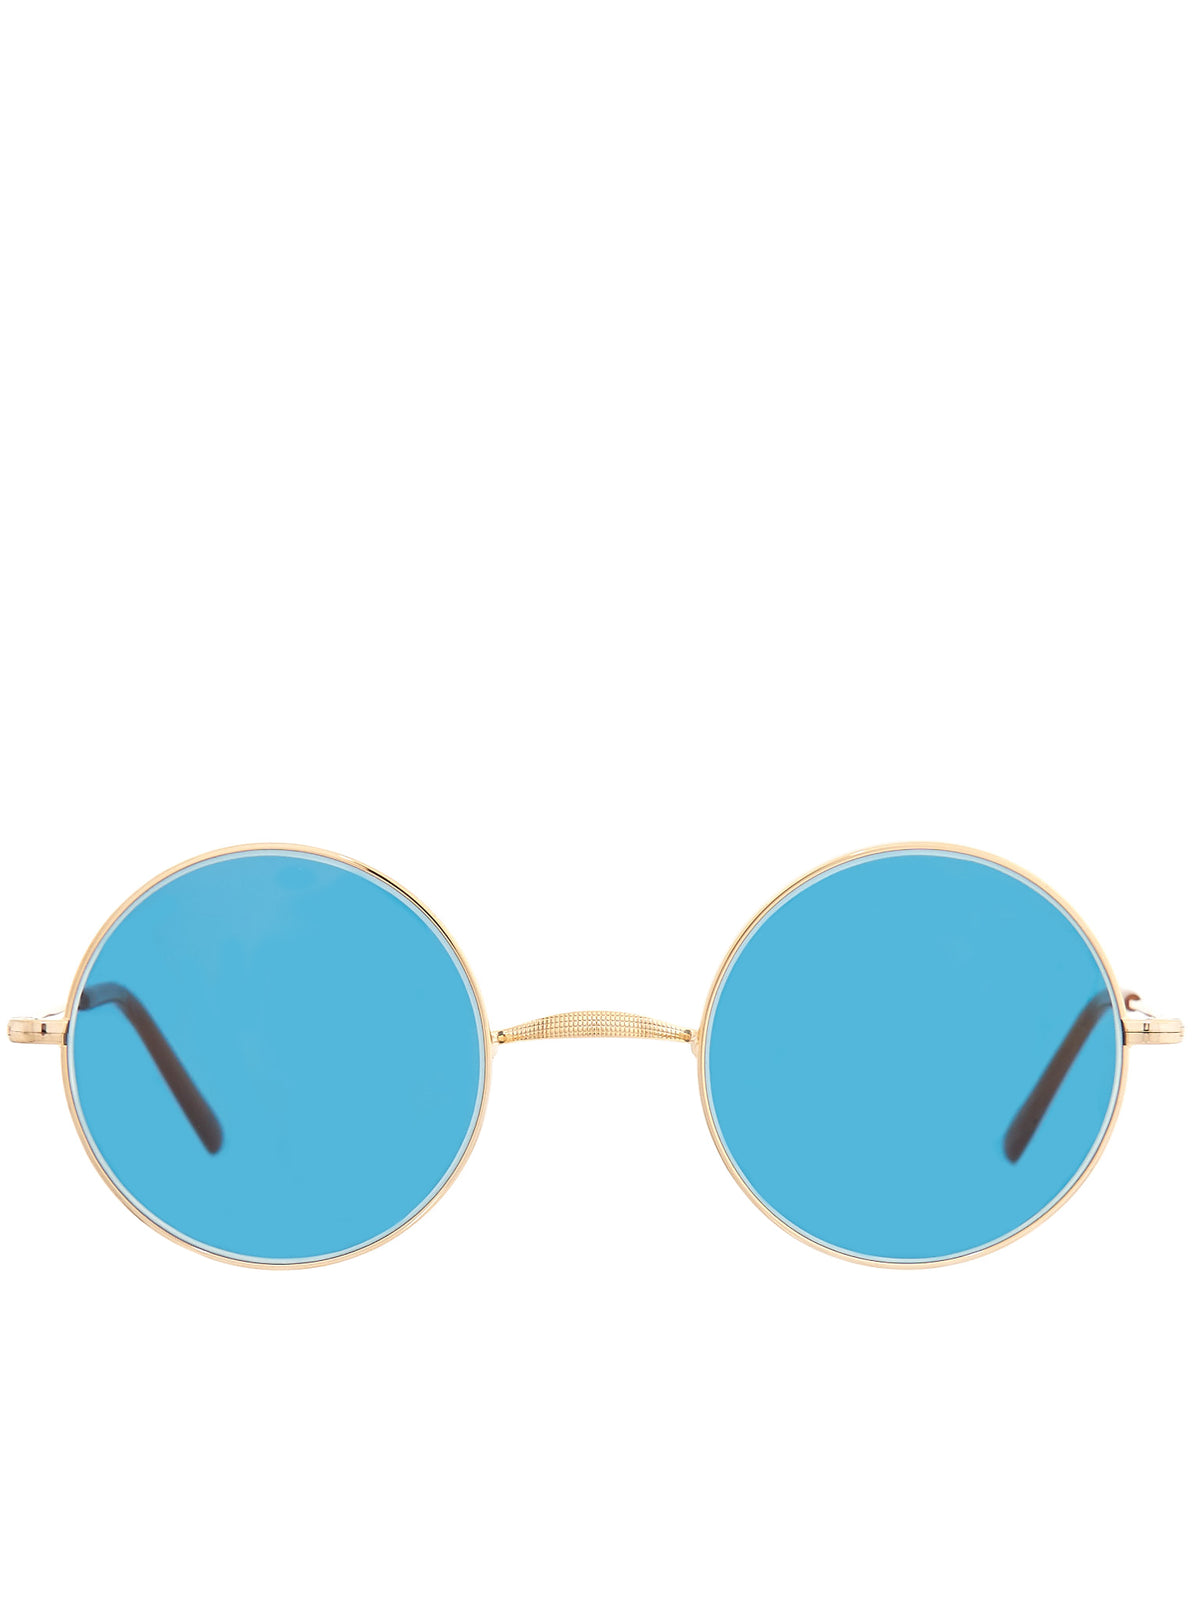 Round Sunglasses (SPM-CLASSIC-GP-HE-BLUE-GREEN4)